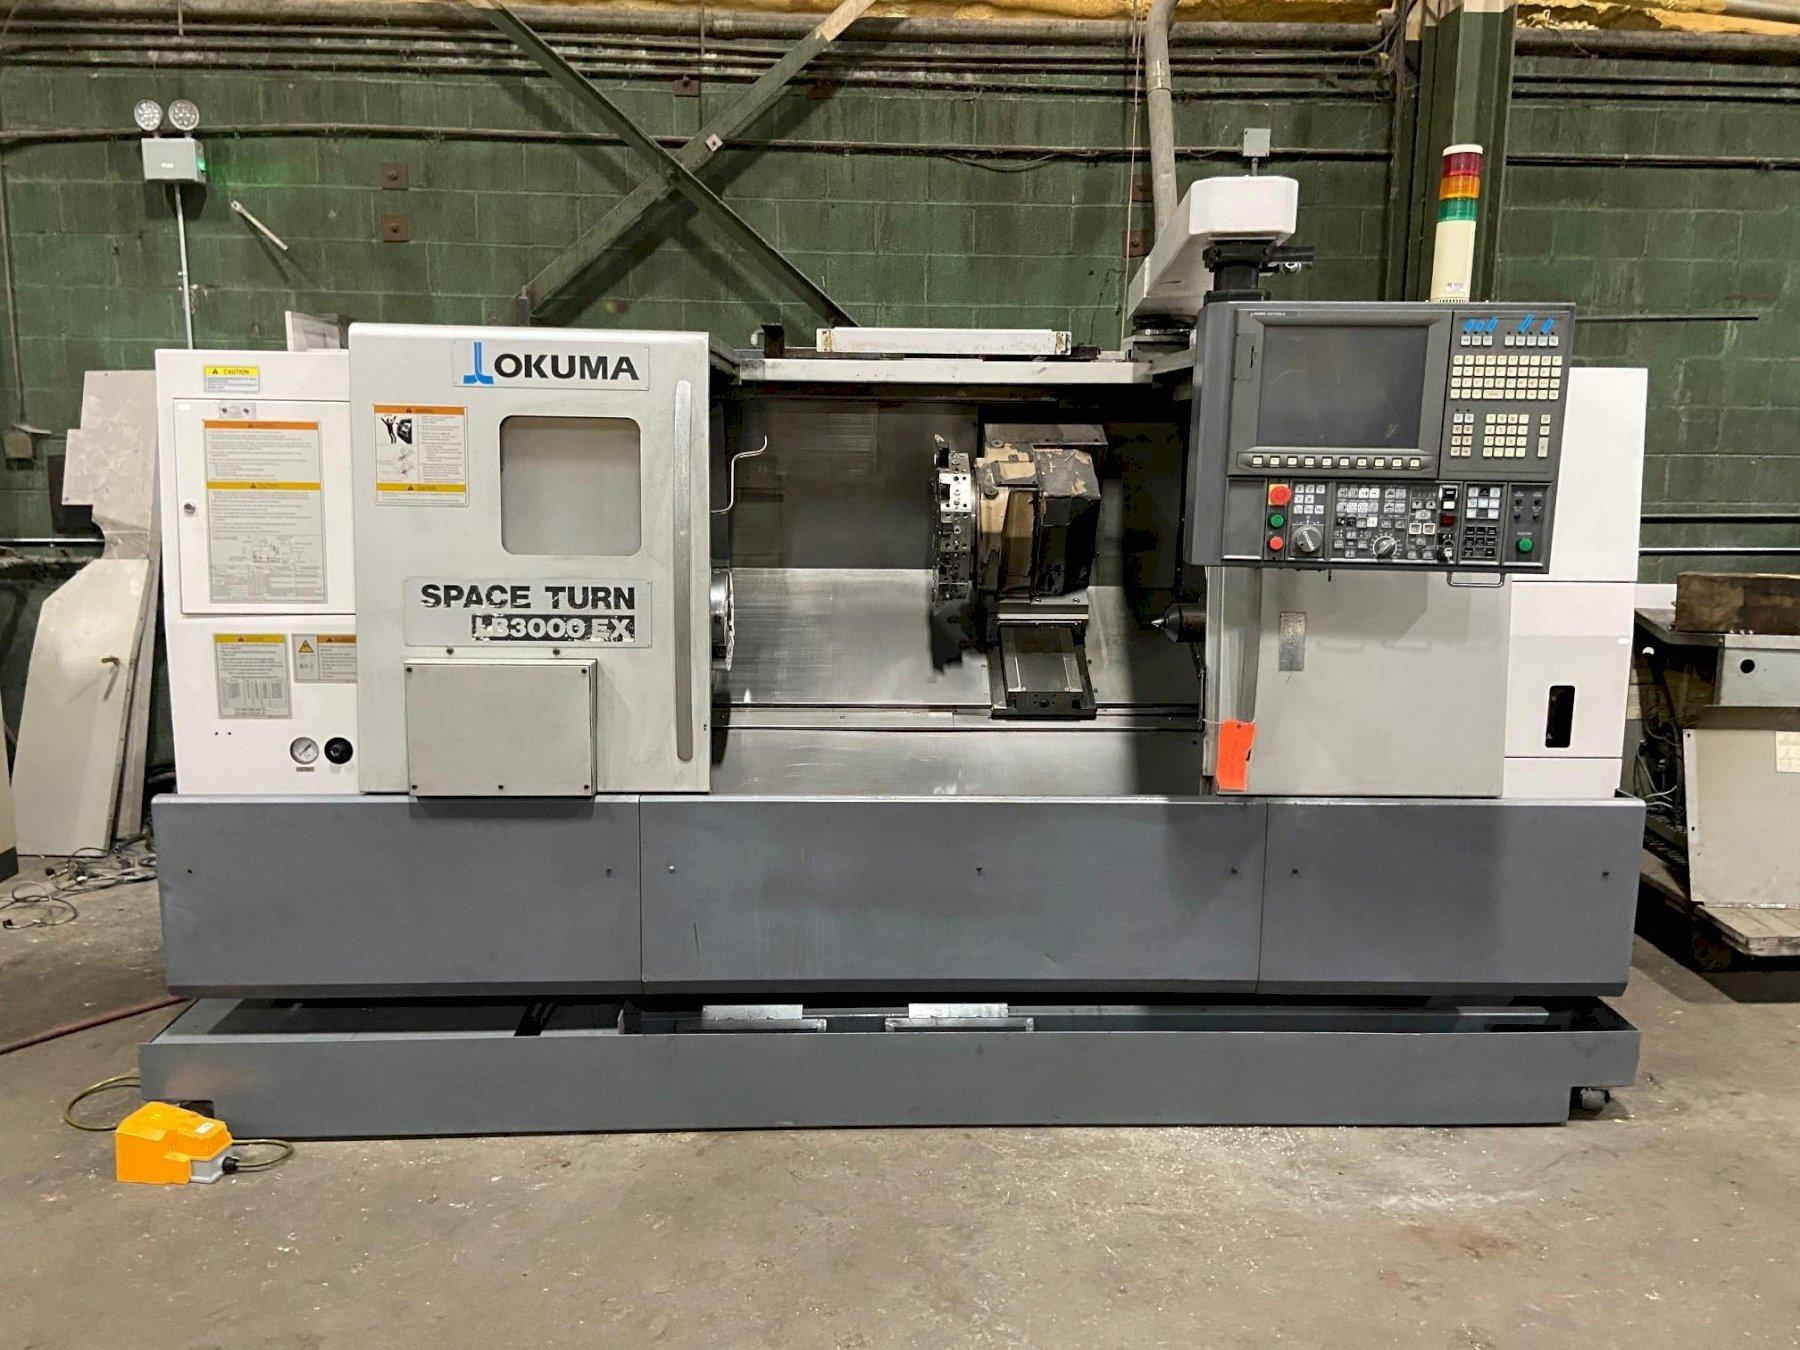 "Okuma LB-3000EX C-1000 Spaceturn CNC Lathe, OSP P200LA, 12"" Chuck, 3.125"" Bar Capacity, 40"" Centers, 22.83"" Swing, Prog Tailstock, Tool Eye, Holders,  2011-2013 (3 Avail)"